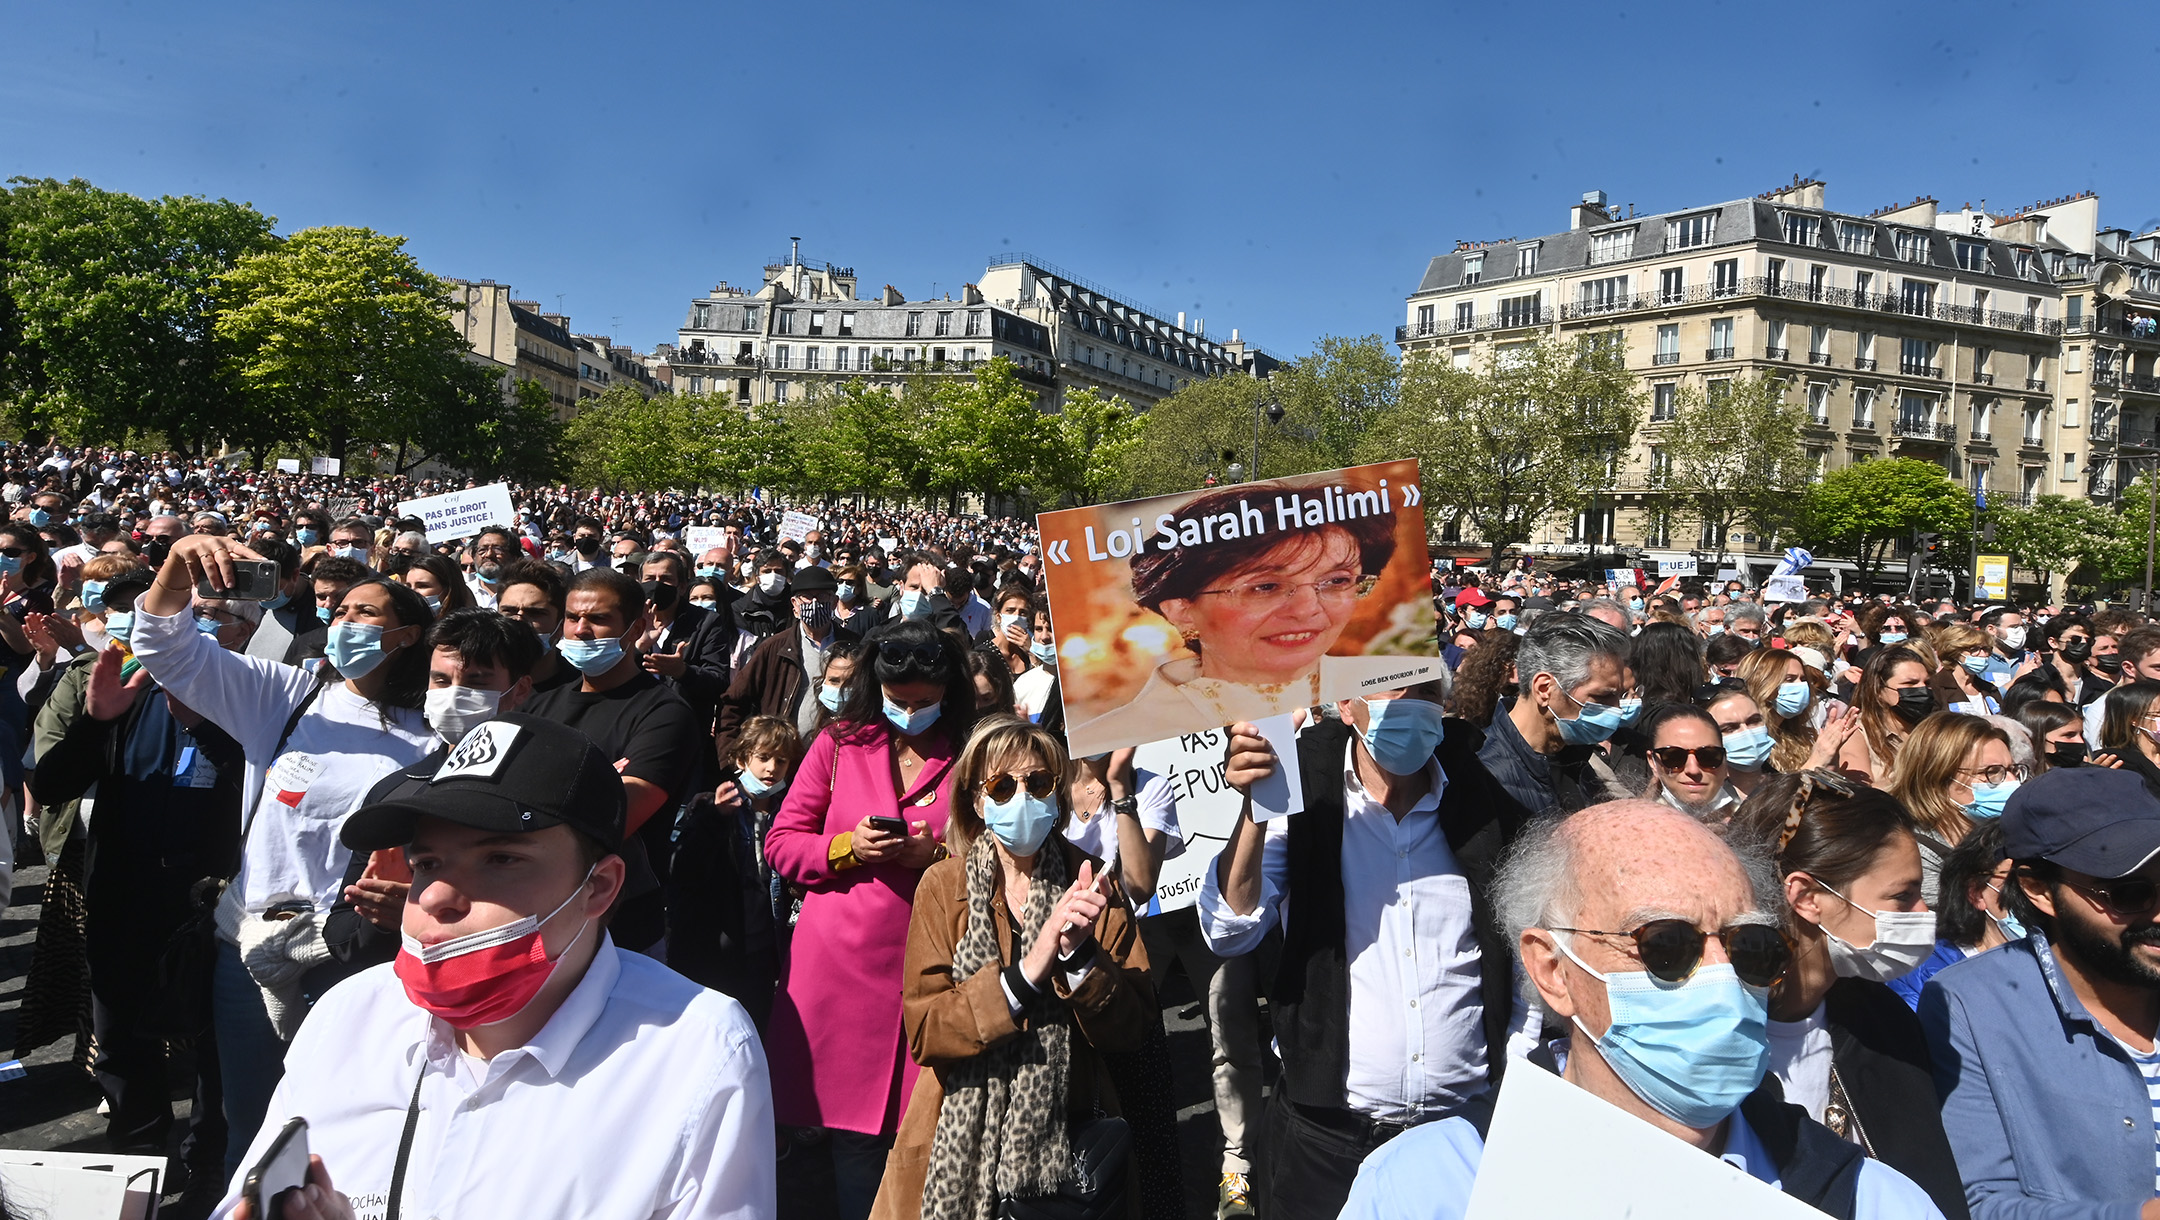 About 20,000 people showed up for the main 'Justice for Sarah Halimi' rally in Paris, France on April 25, 2021. (Cnaan Liphshiz)